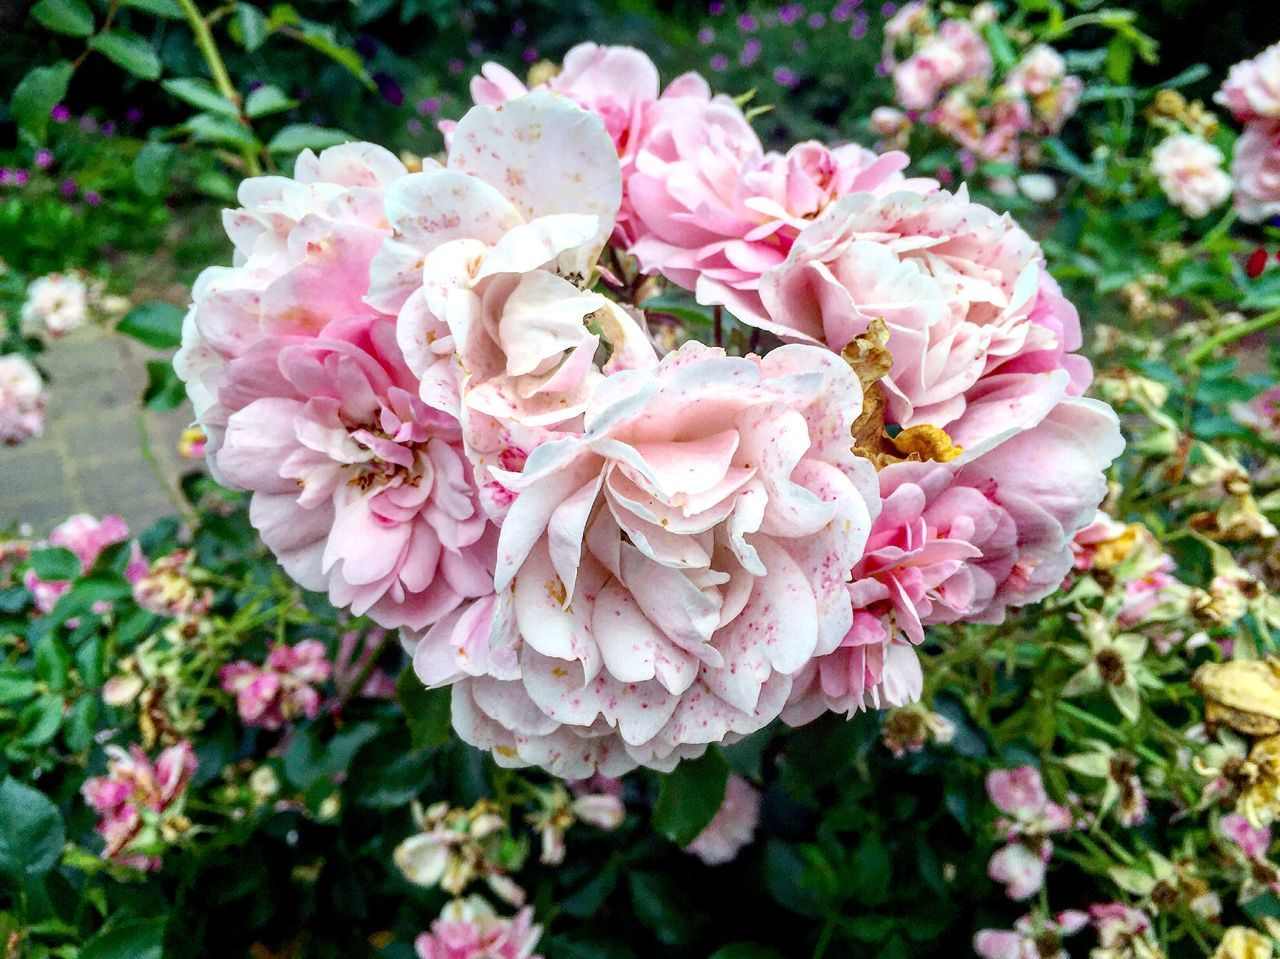 flower, pink color, nature, petal, plant, beauty in nature, rose - flower, fragility, growth, no people, flower head, blooming, wild rose, peony, close-up, outdoors, day, freshness